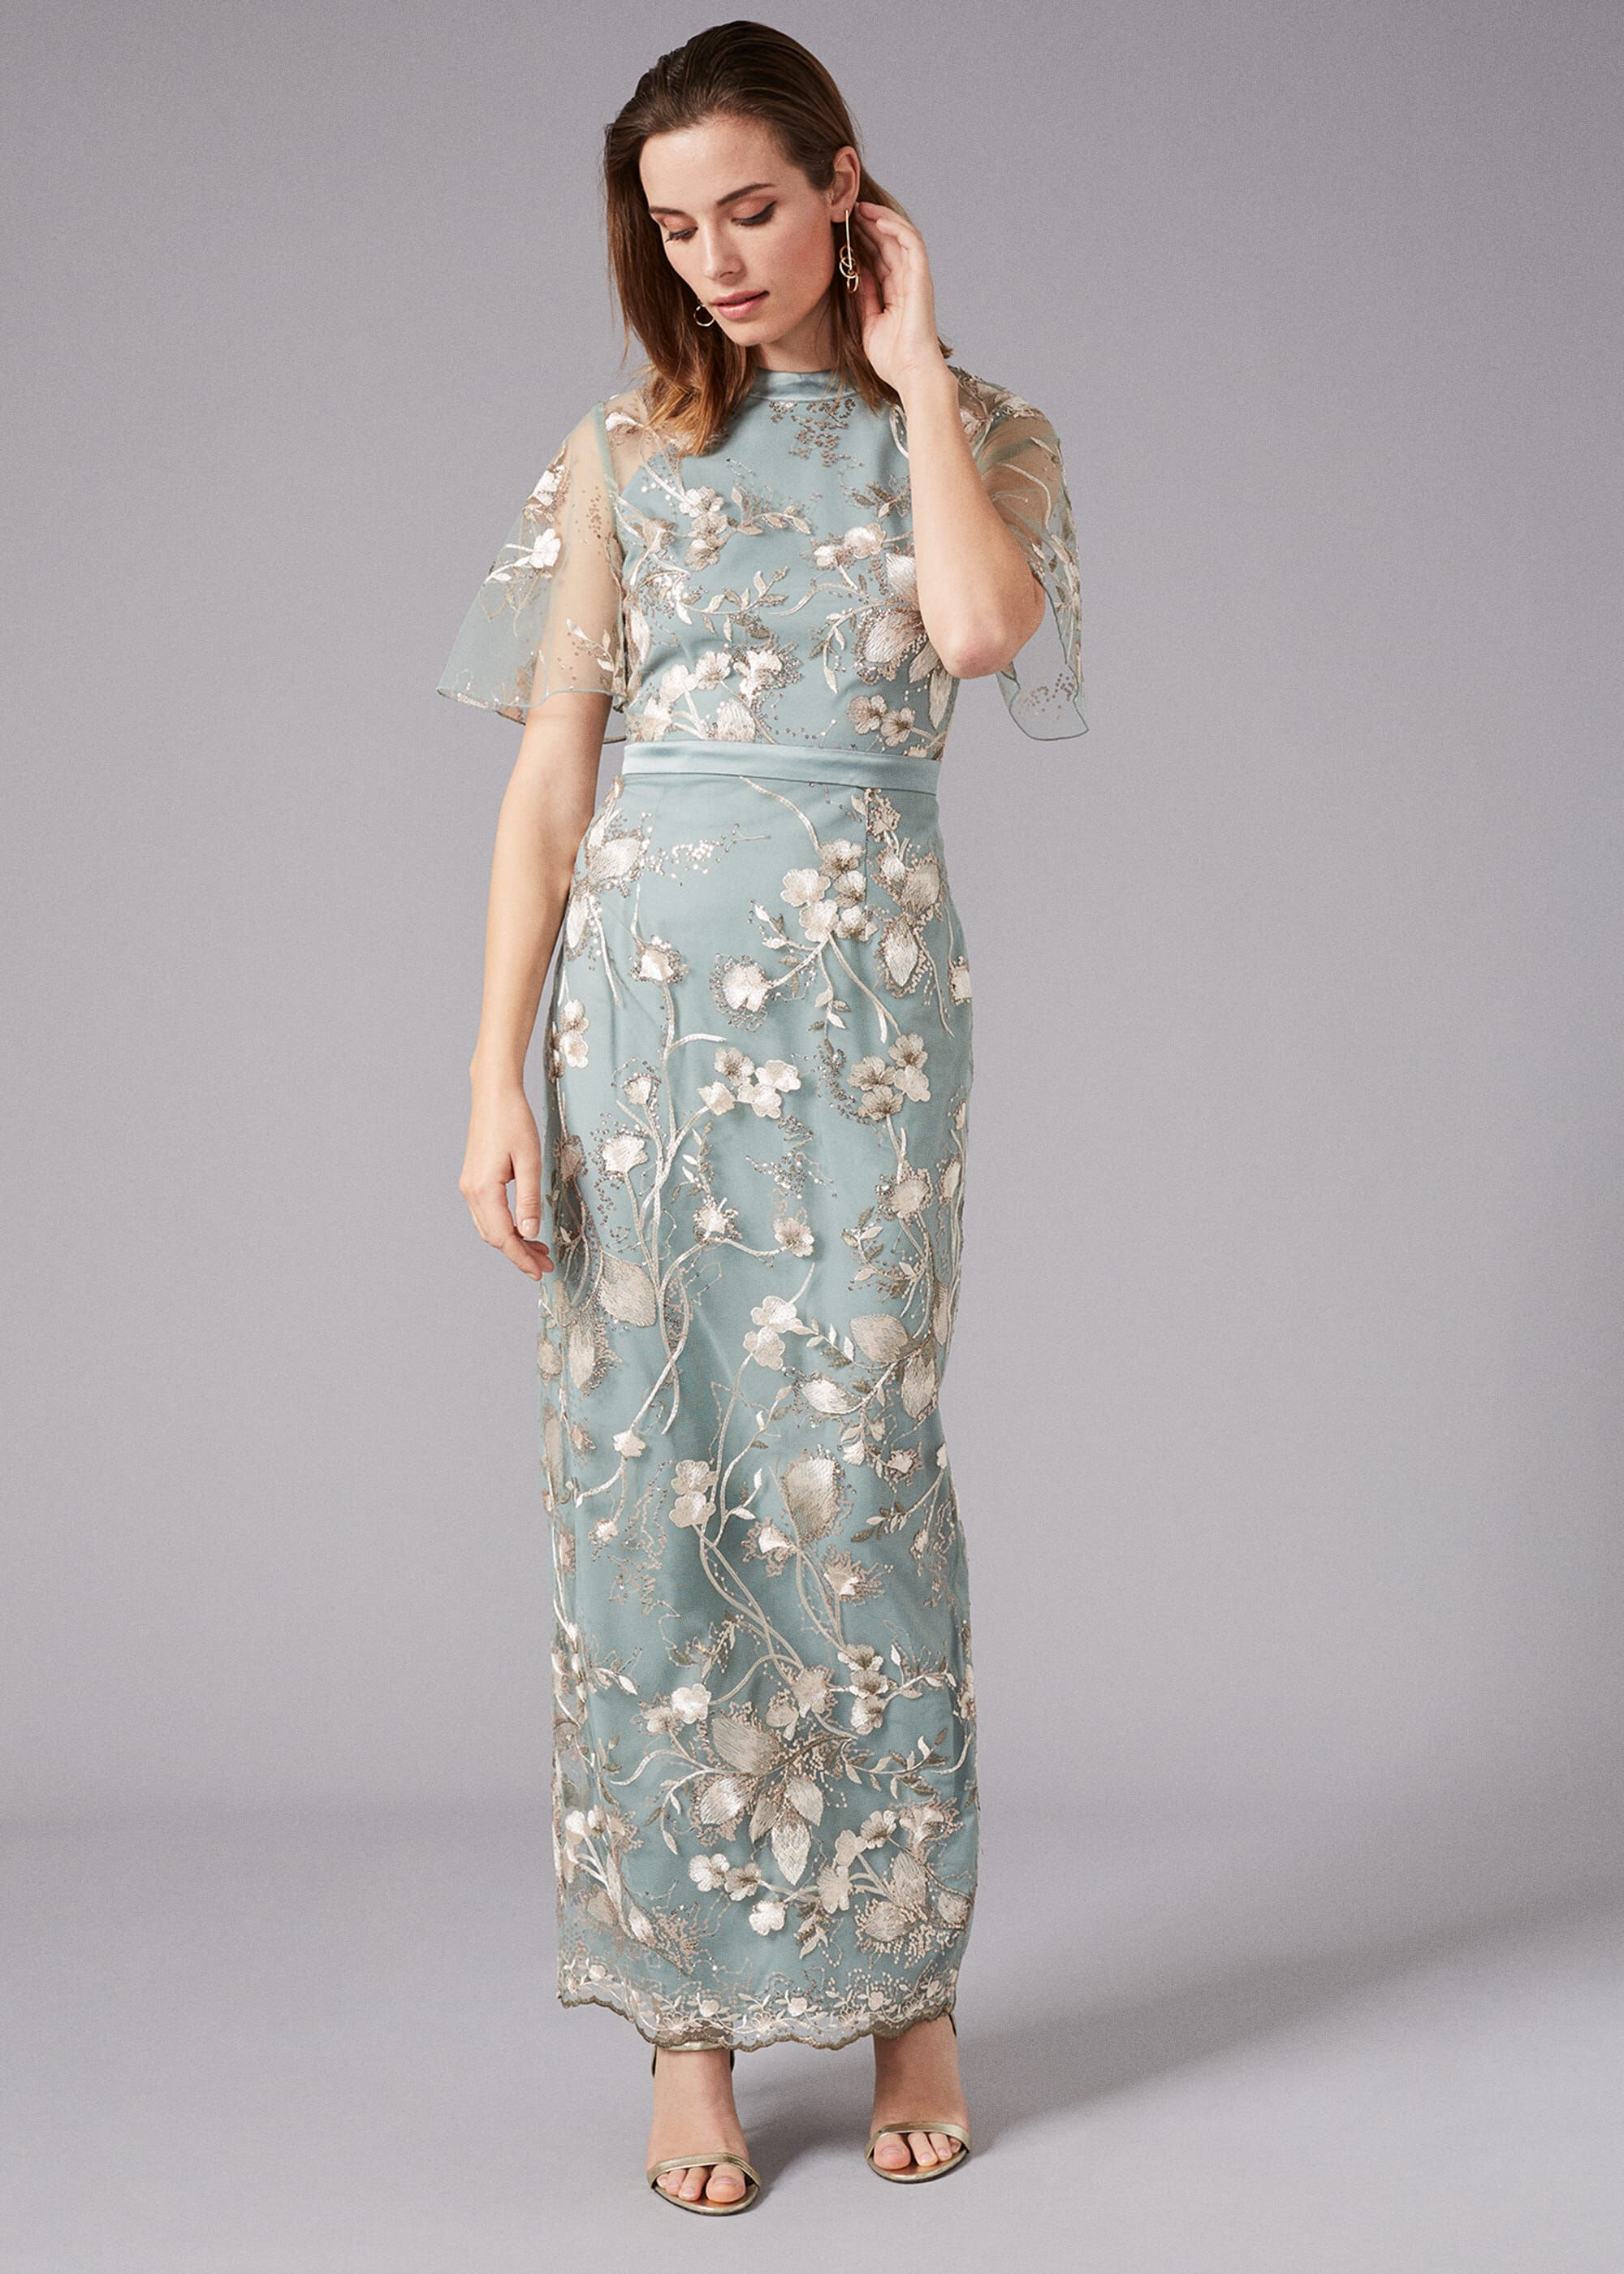 Phase Eight Glenda Floral Embroidered Maxi Dress, Green, Maxi, Occasion Dress